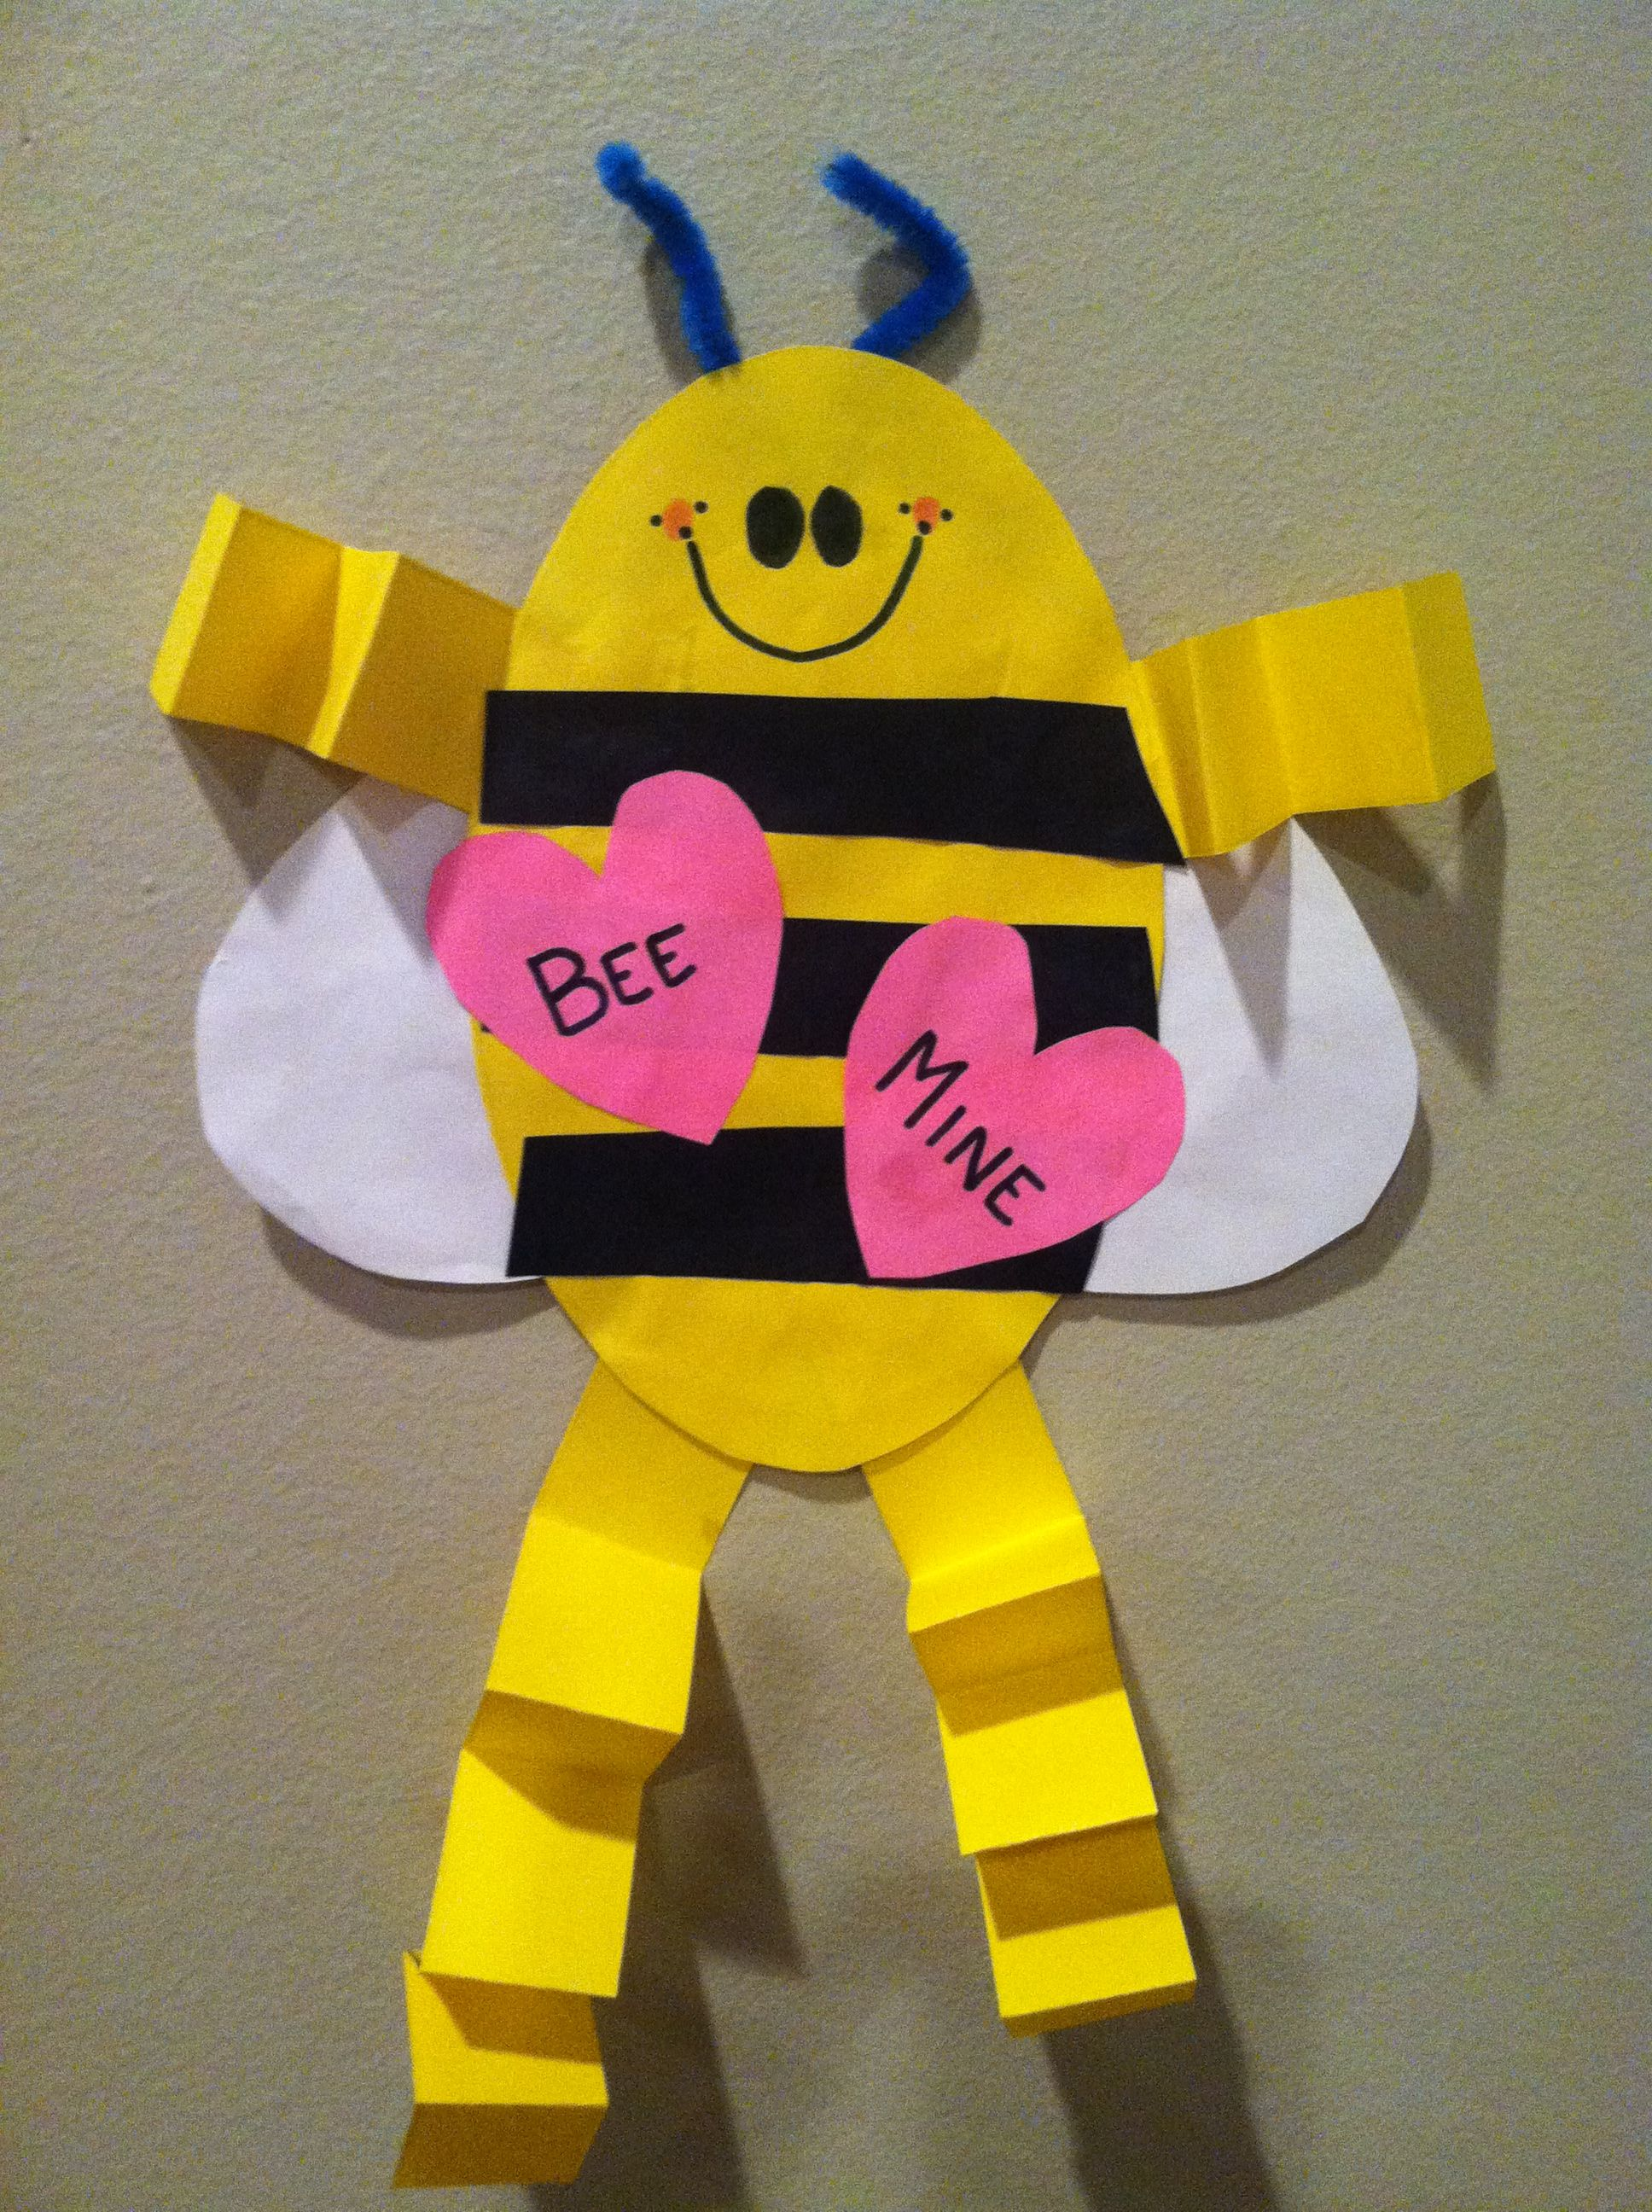 Valentine Bee Mine Craft In Preschool And Pre K